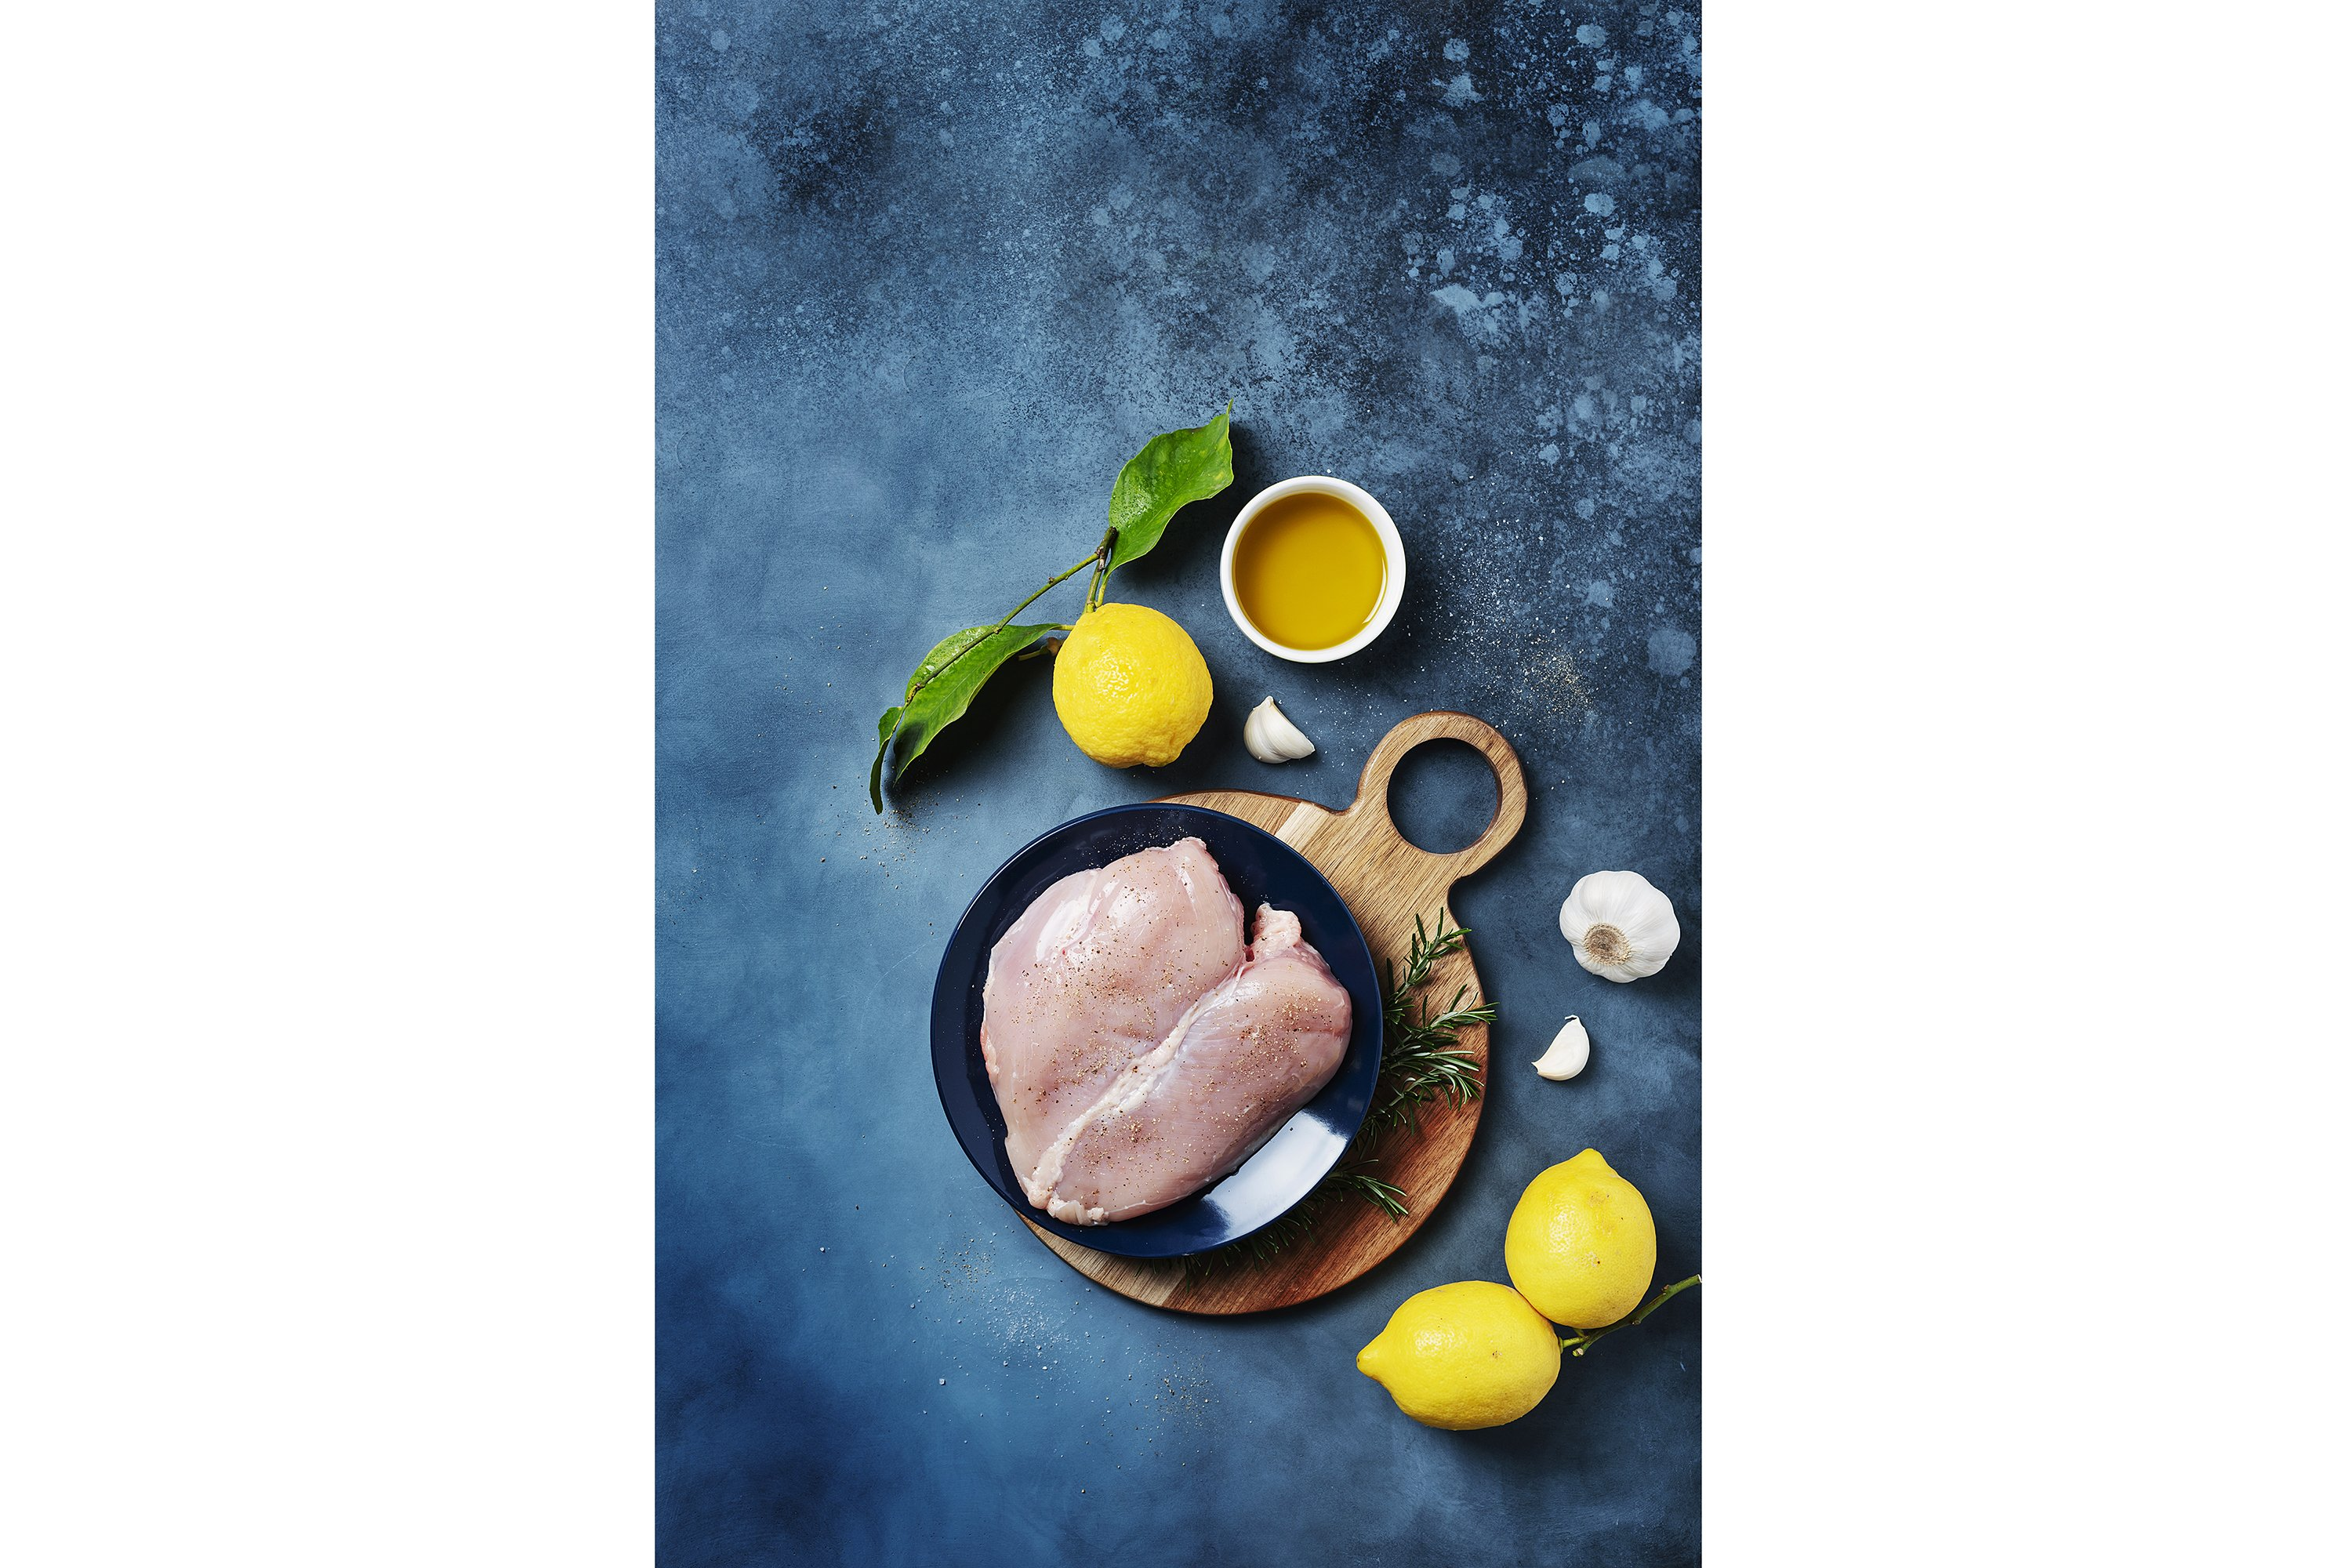 Healthy eating concept. Ingredients for cooking chicken example image 1